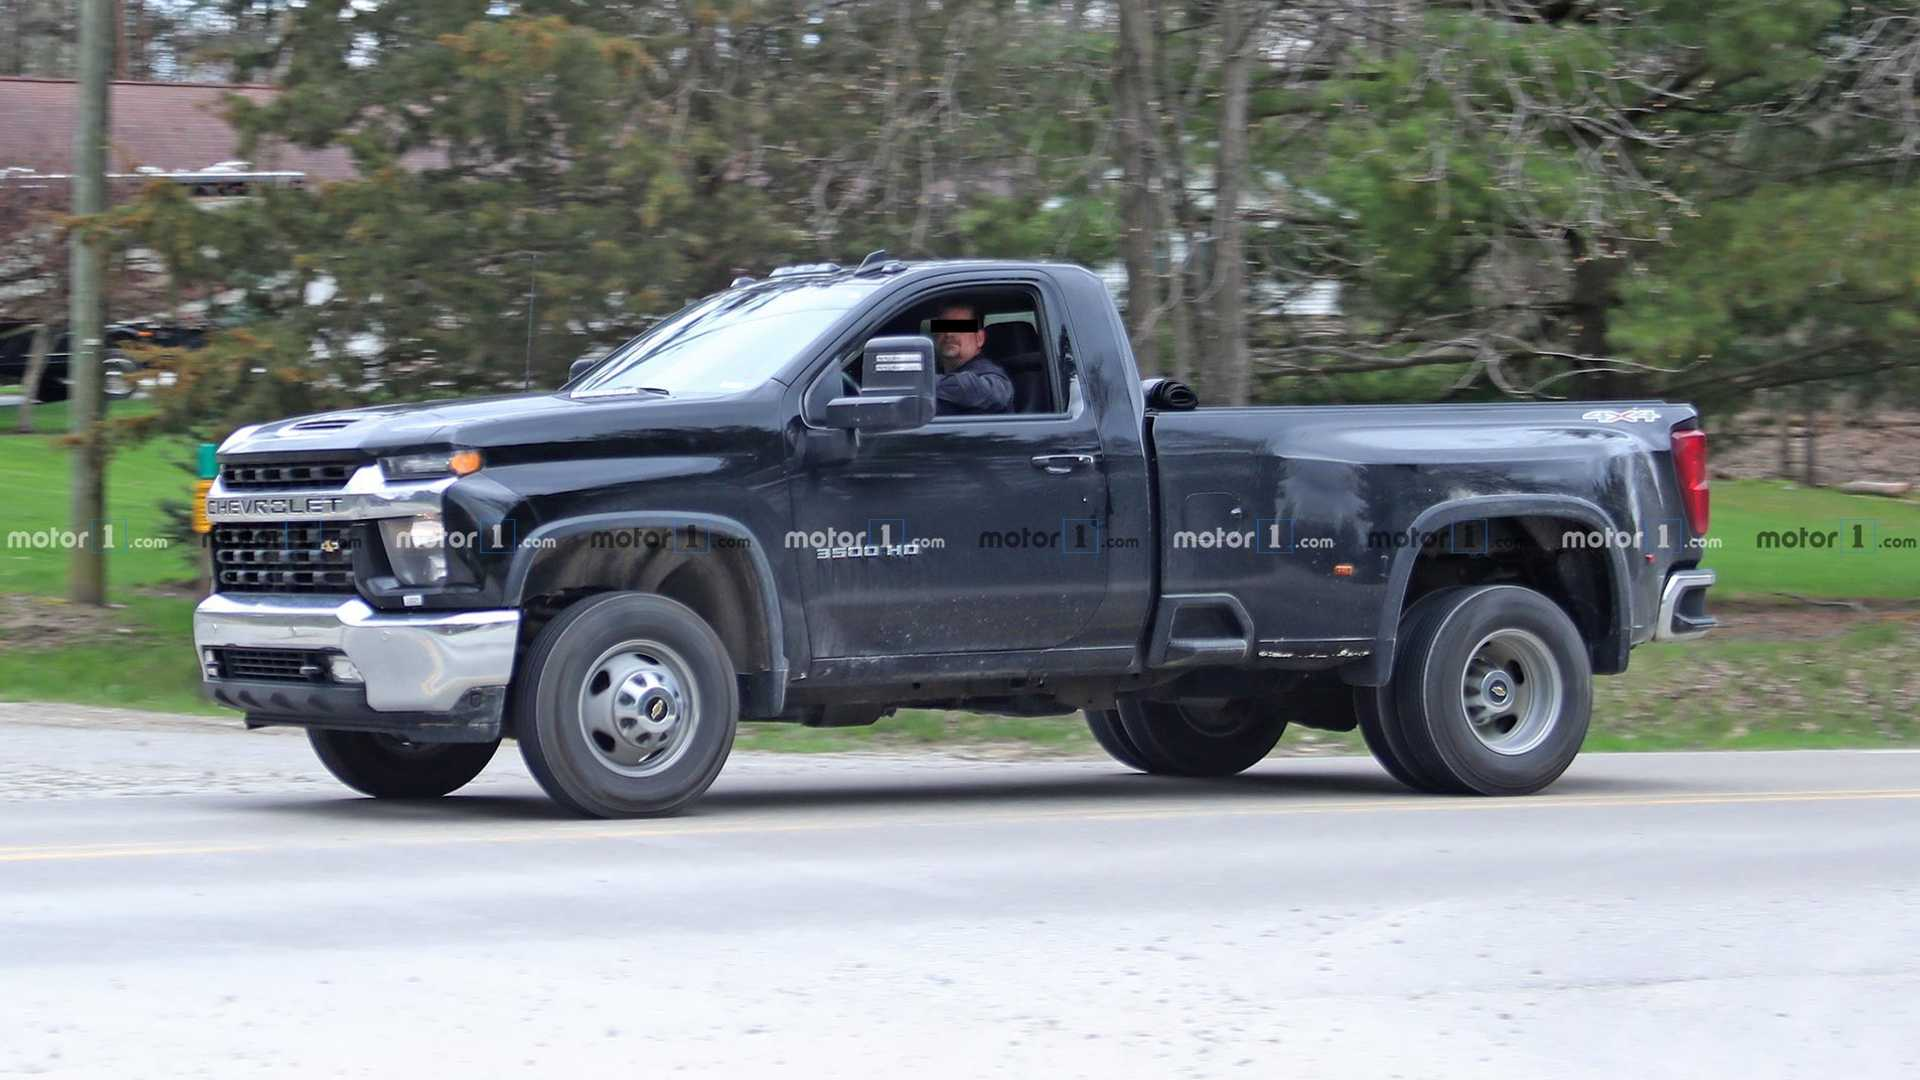 2020 Chevy Silverado HD Single Cab Dually Spied Fully